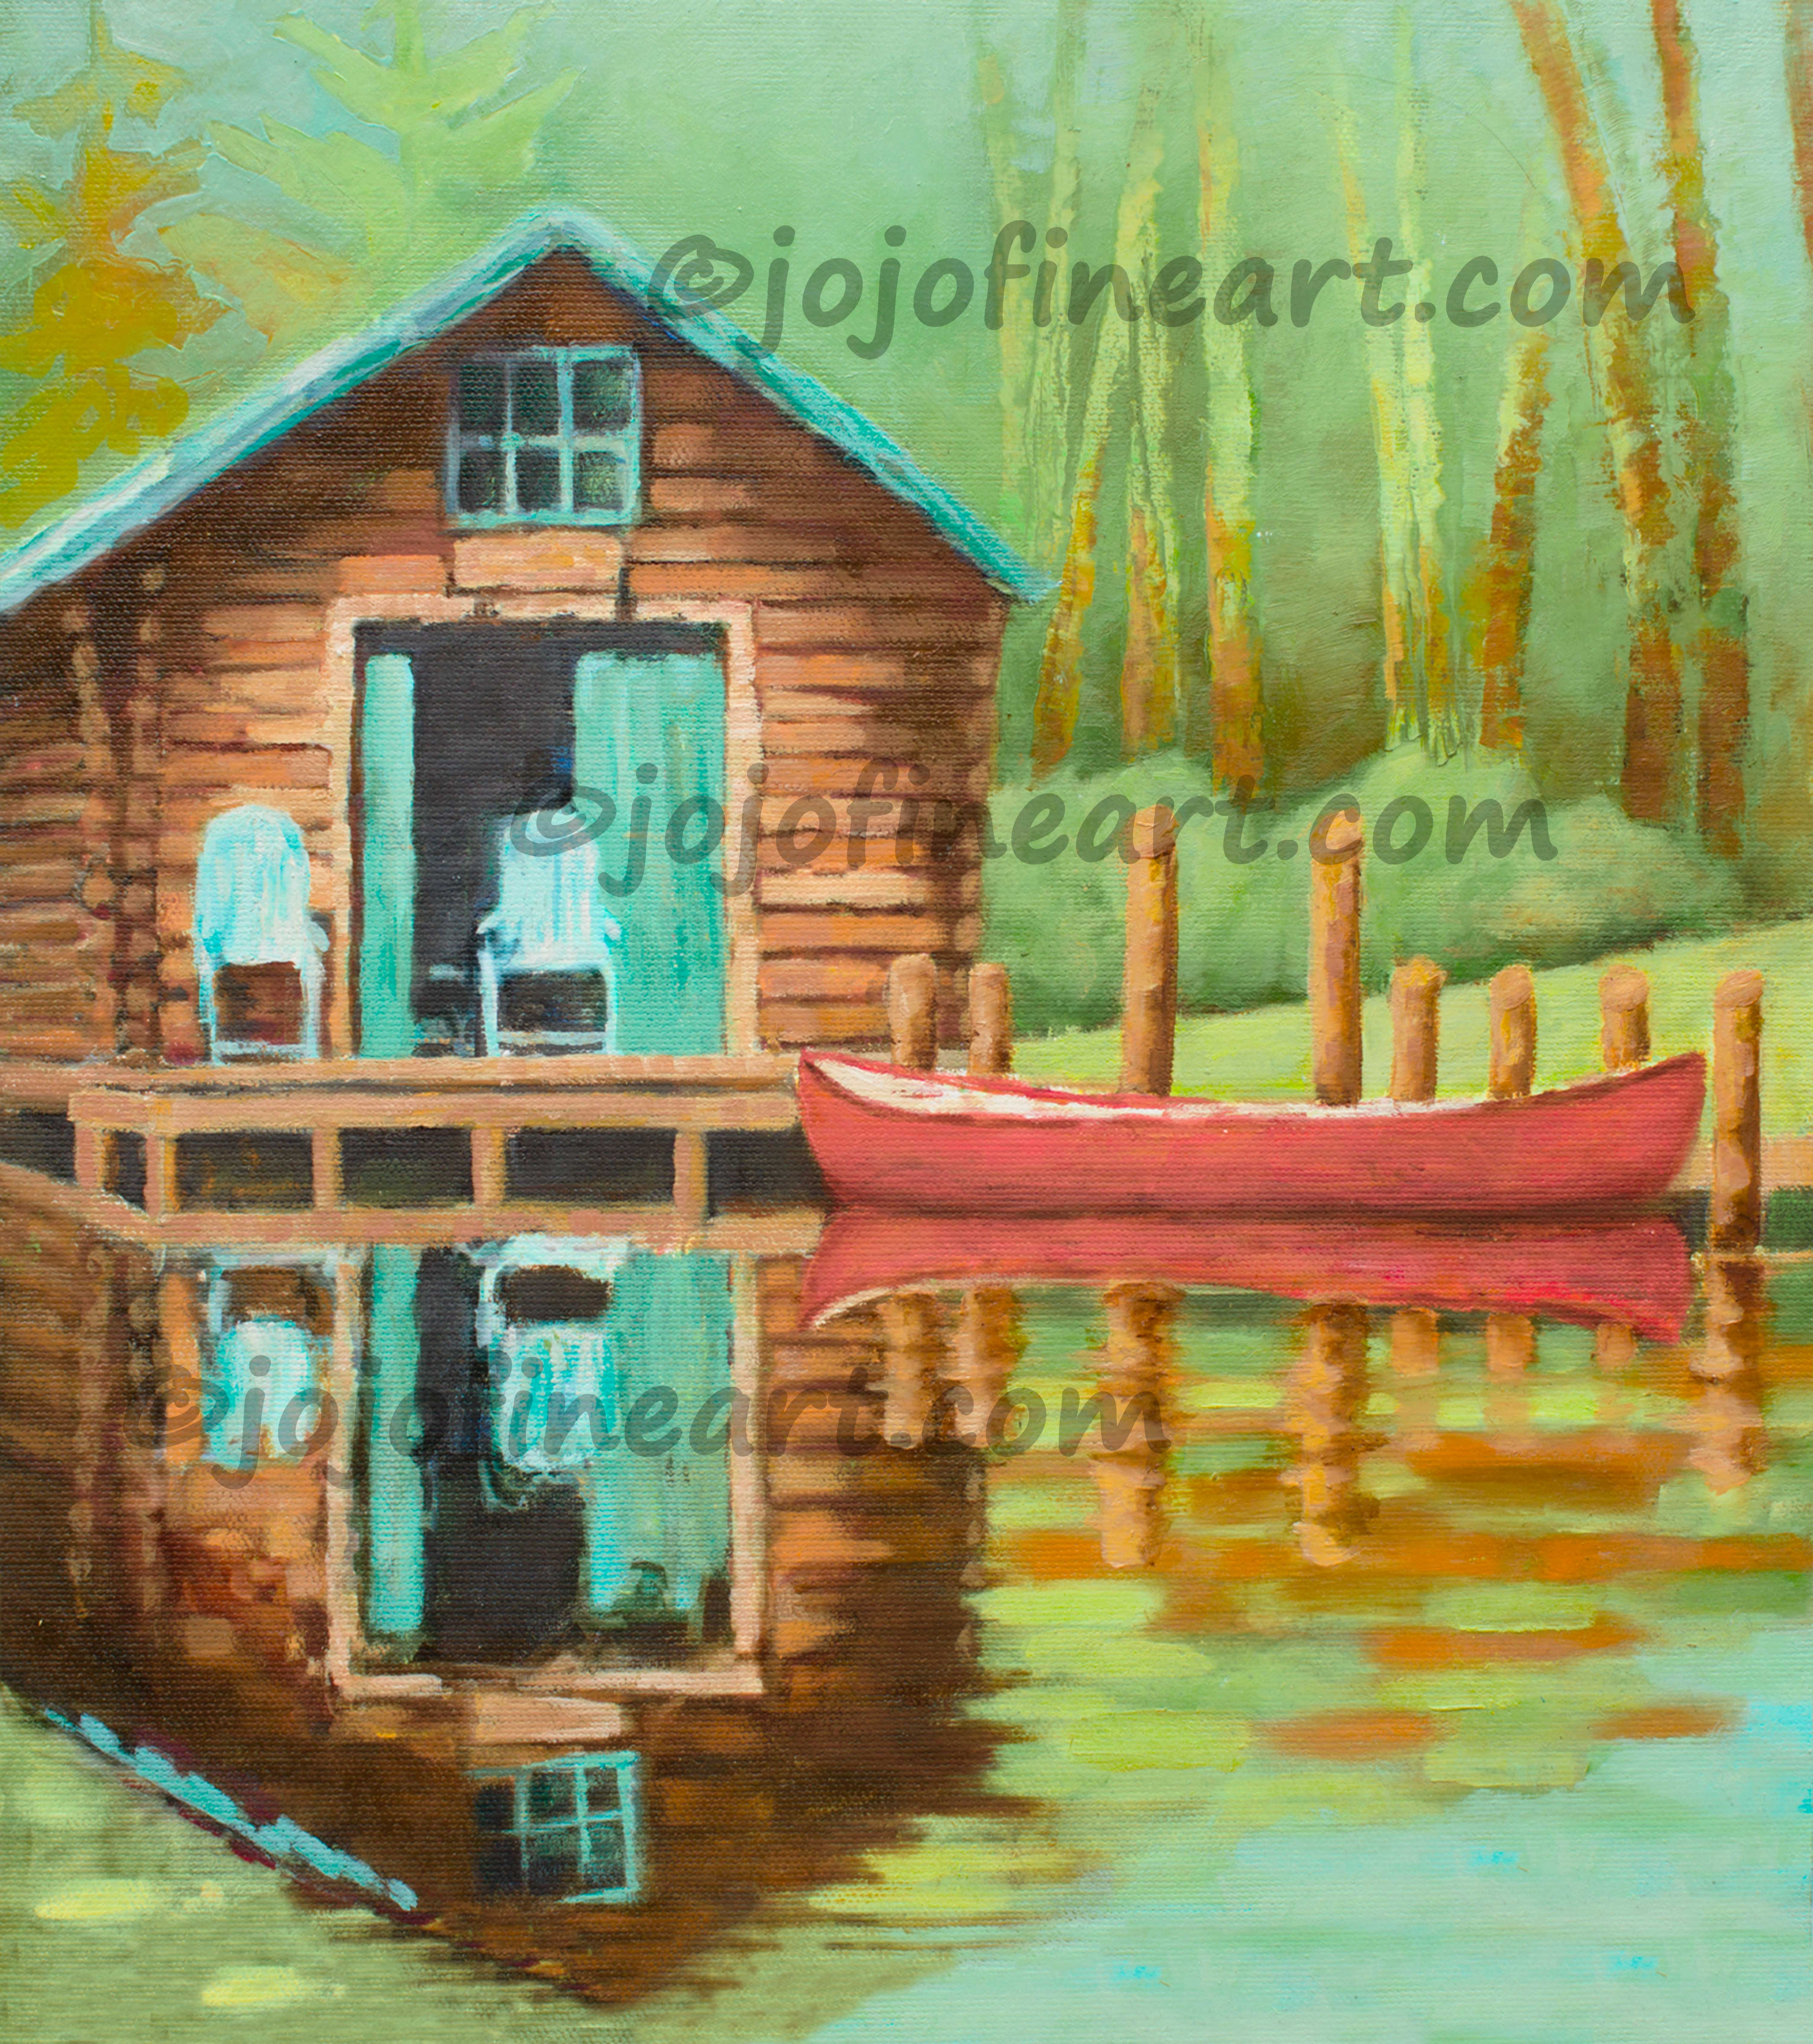 Paintings Of Areas Around Michigan That Inspire Me Art By